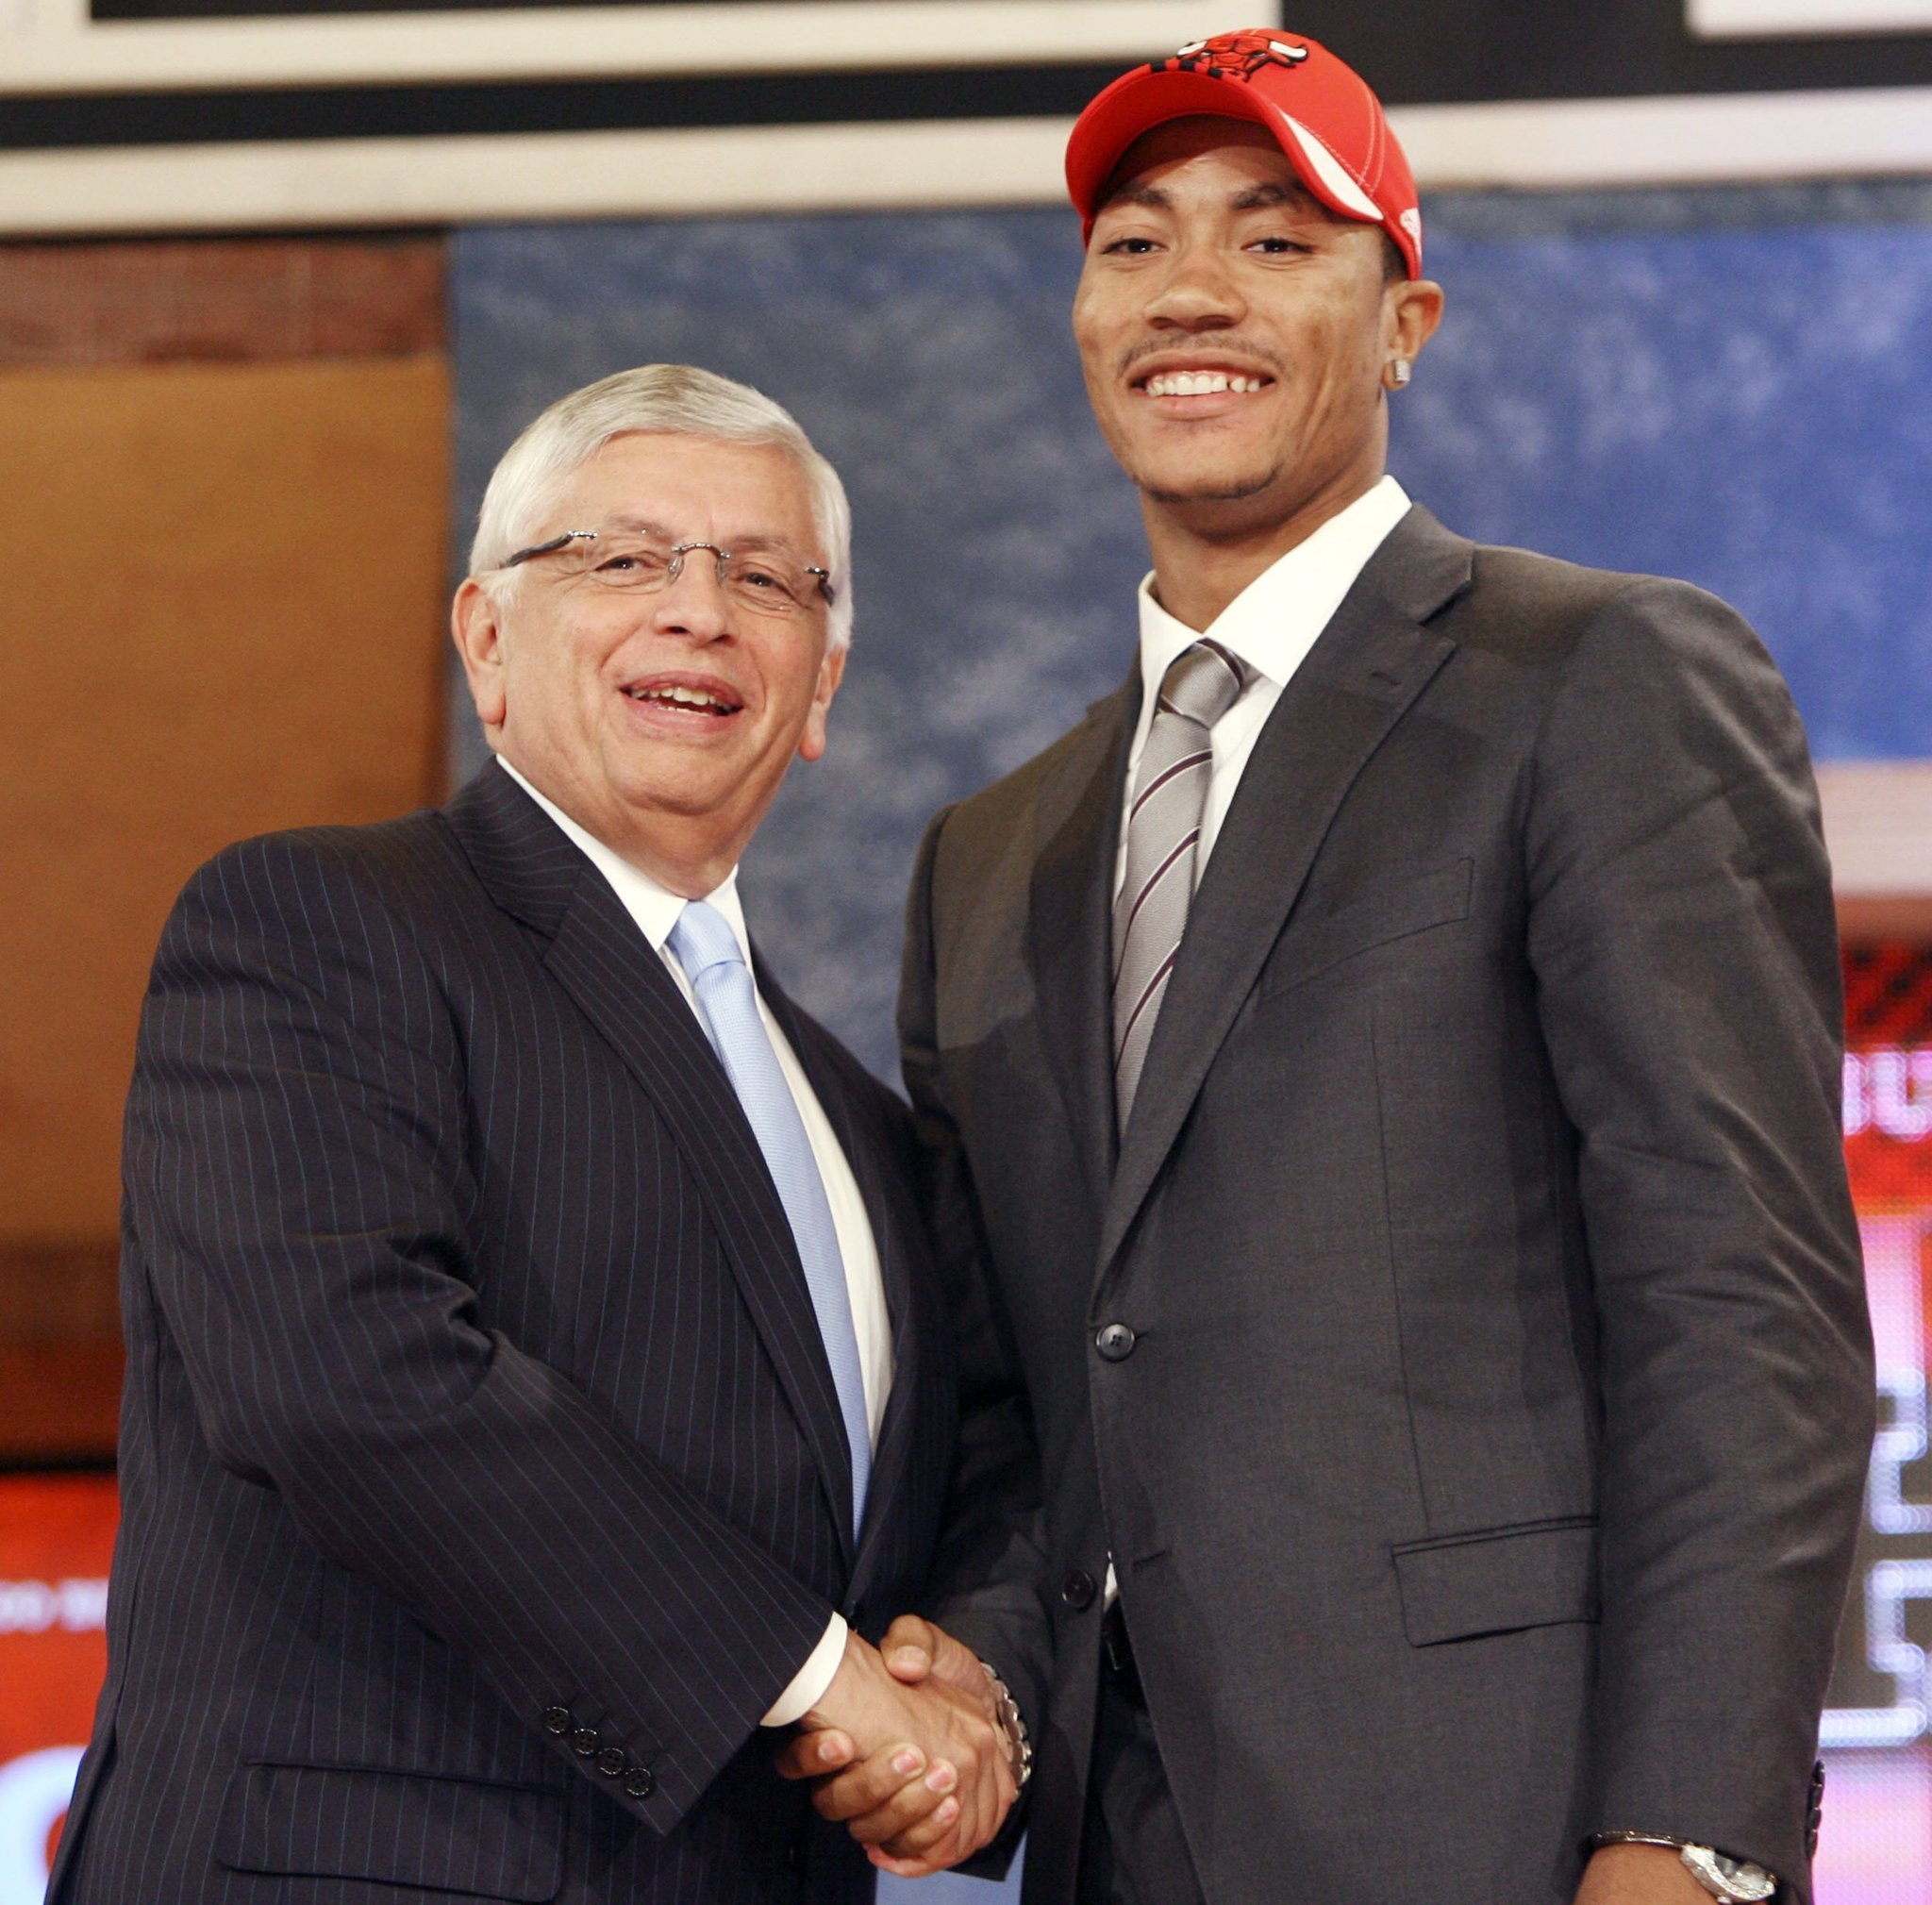 Ct-derrick-rose-2008-nba-draft